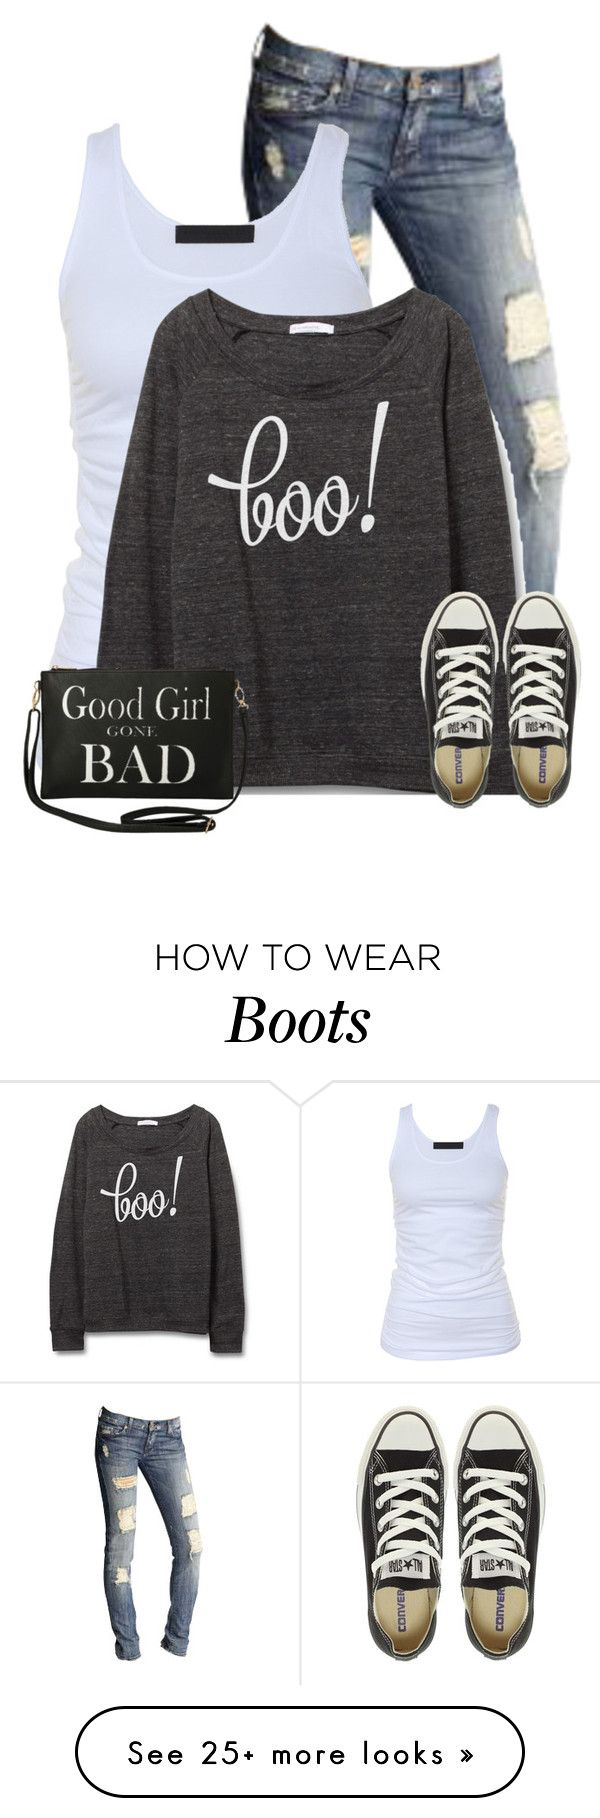 """Halloween Sweaters"" by cindycook10 on Polyvore featuring 7 For All Mankind, Tusnelda Bloch, Converse and Torrid"